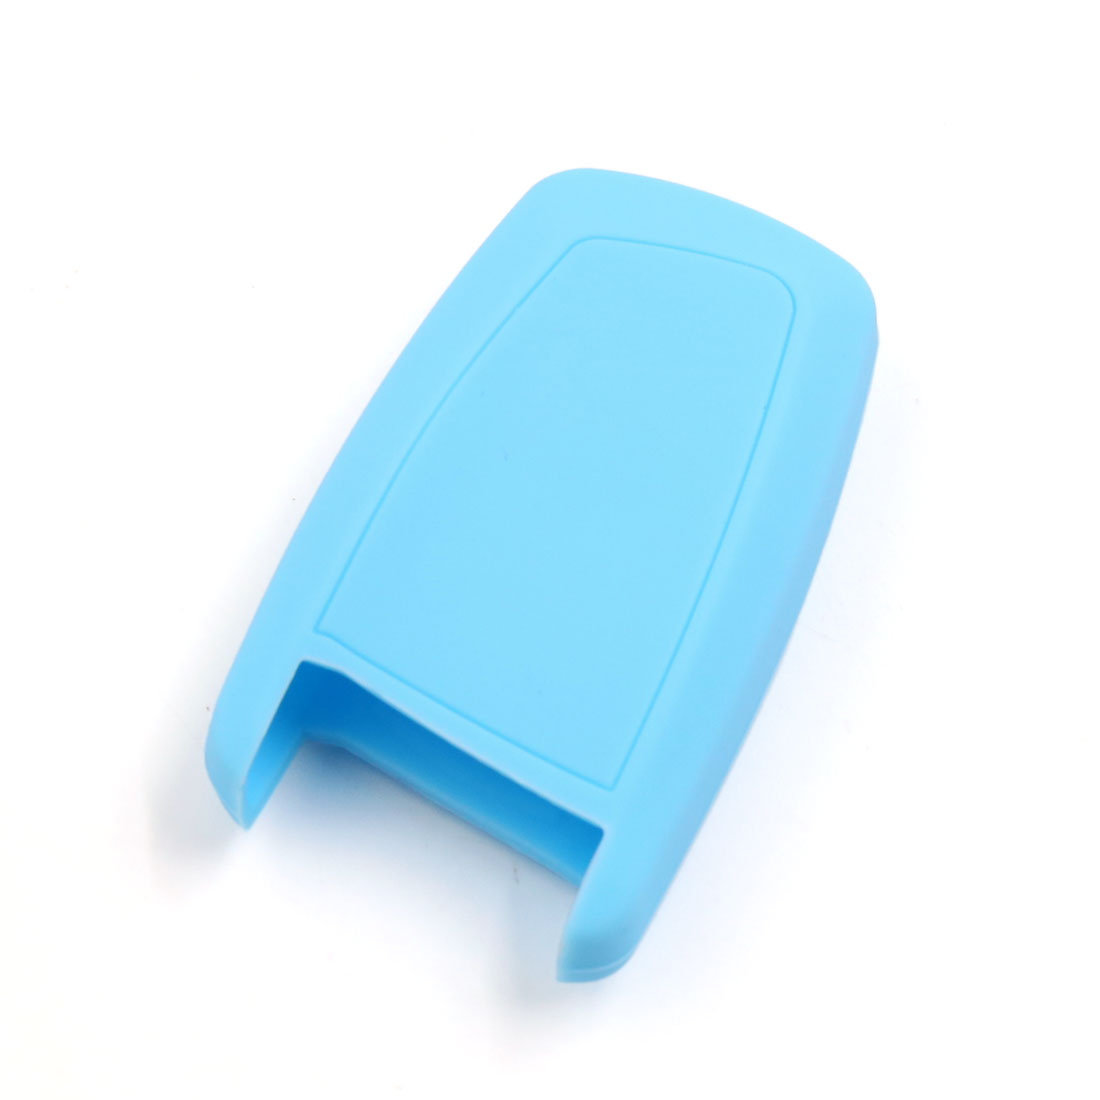 Light Blue Silicone Car Remote Flip Key Cover Shell Case for BMW 1 3 5 7 Series - image 1 of 3